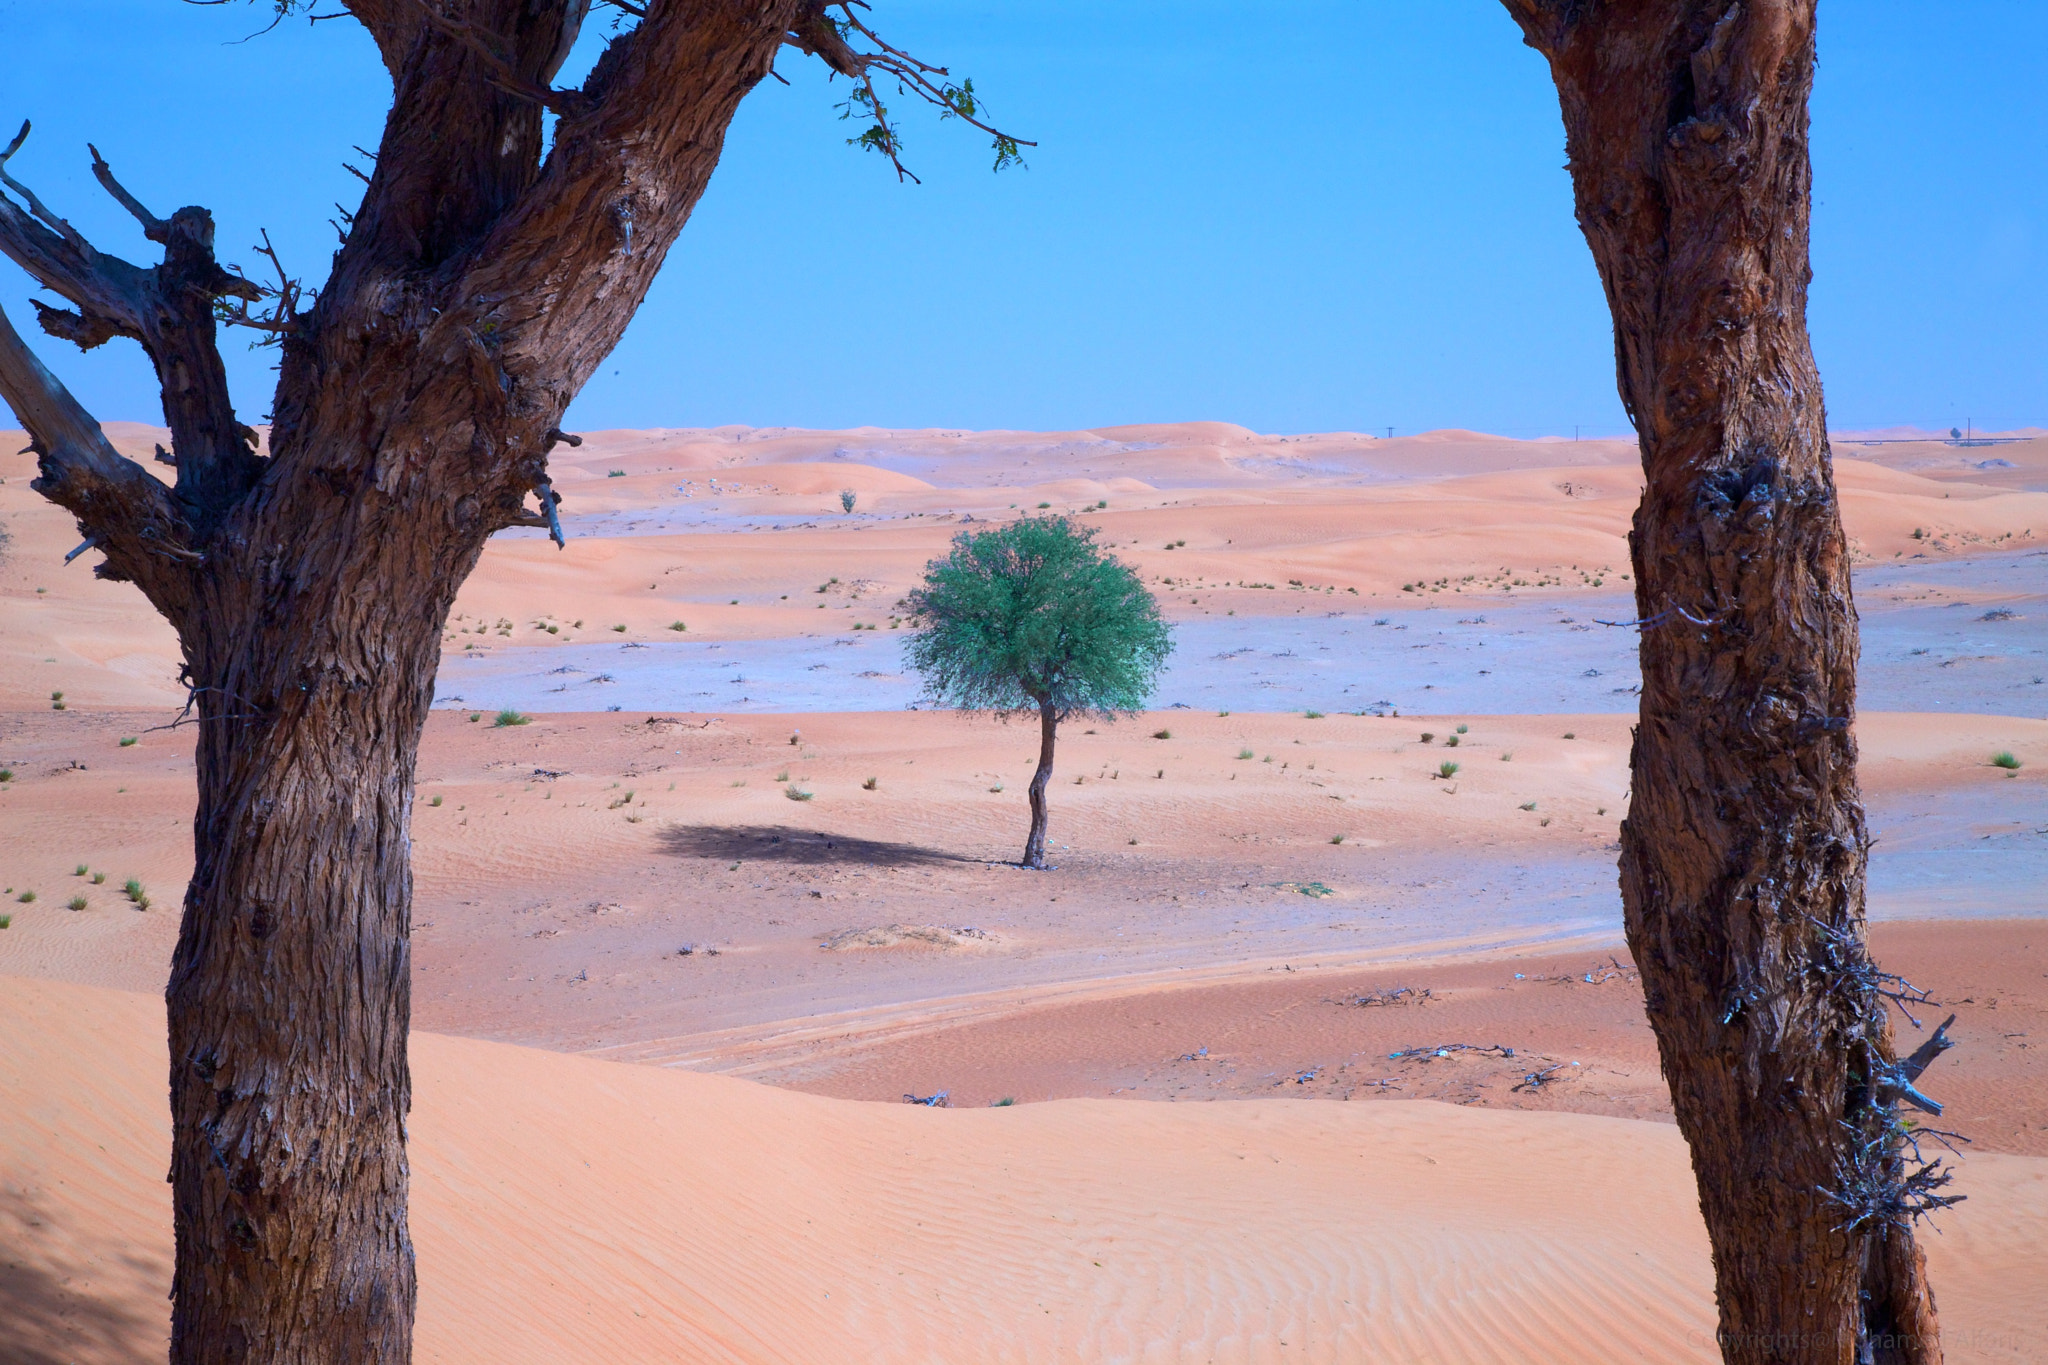 Photograph Alone in the Desert by Mohamed  Al Faris on 500px